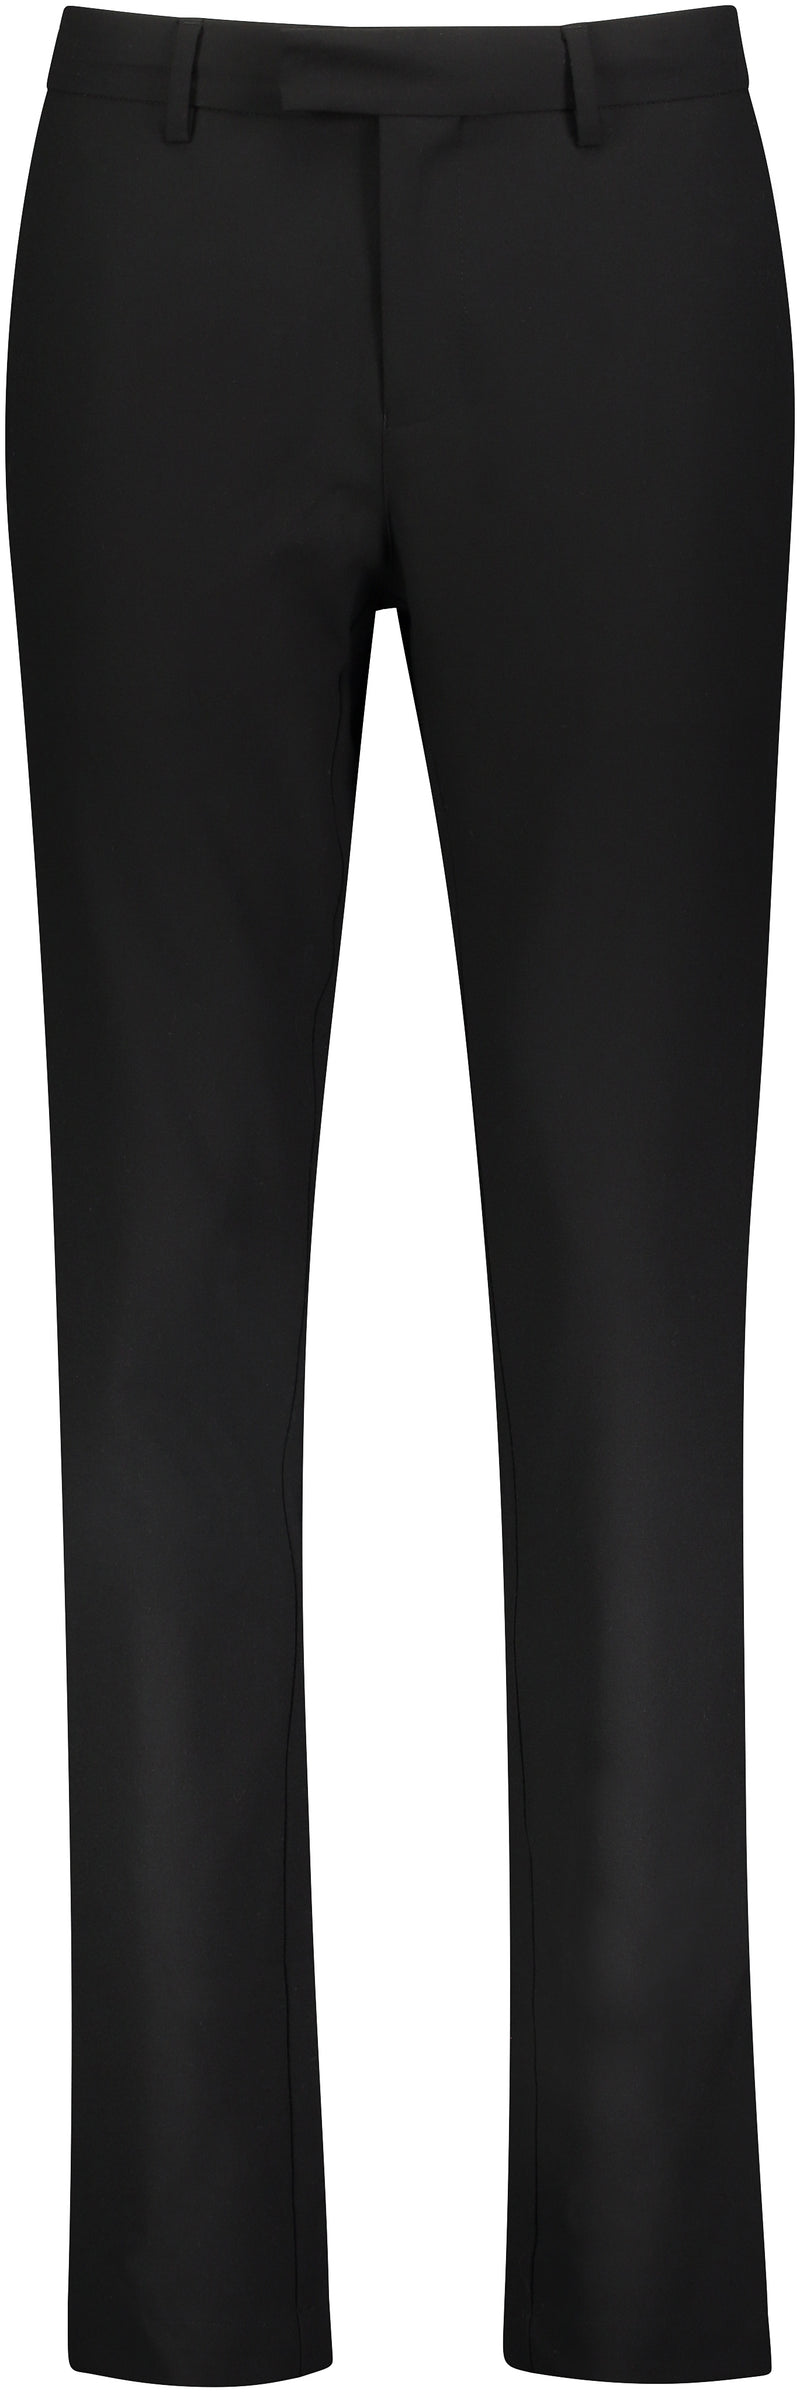 Braut Pants (BLACK)